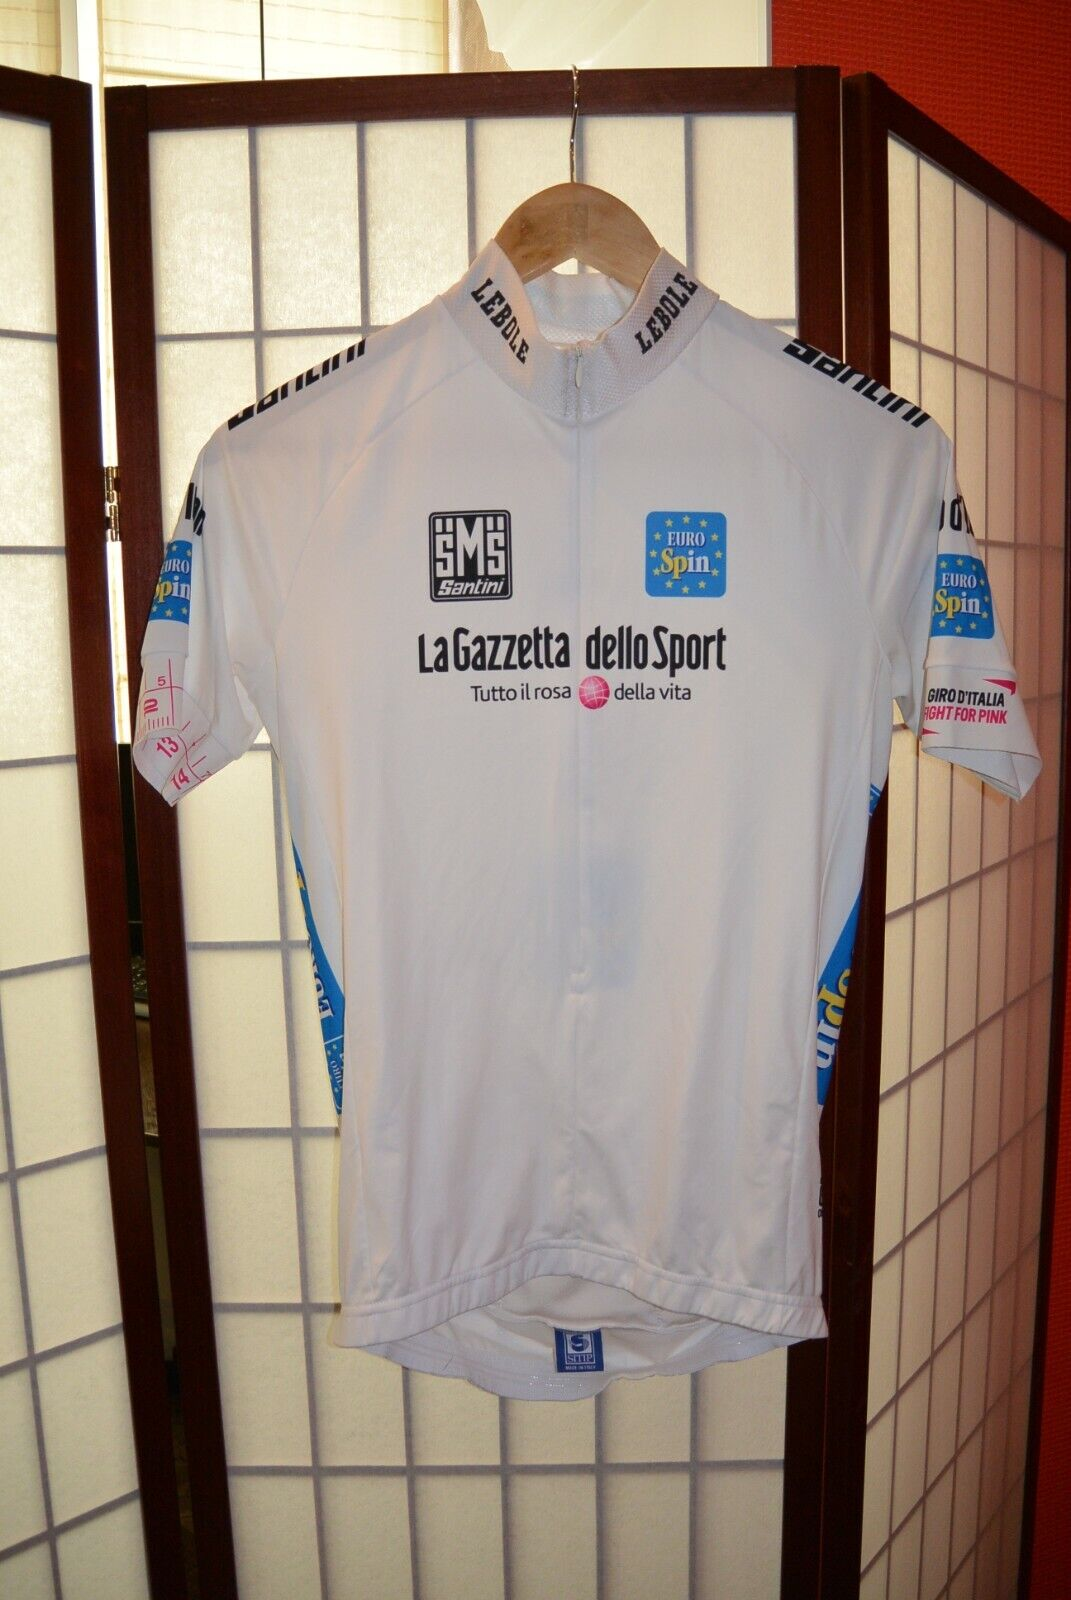 LA  Gazzettar dello Sport Euro Spin SMS retro vintage  cycling jersey ()  fashion mall